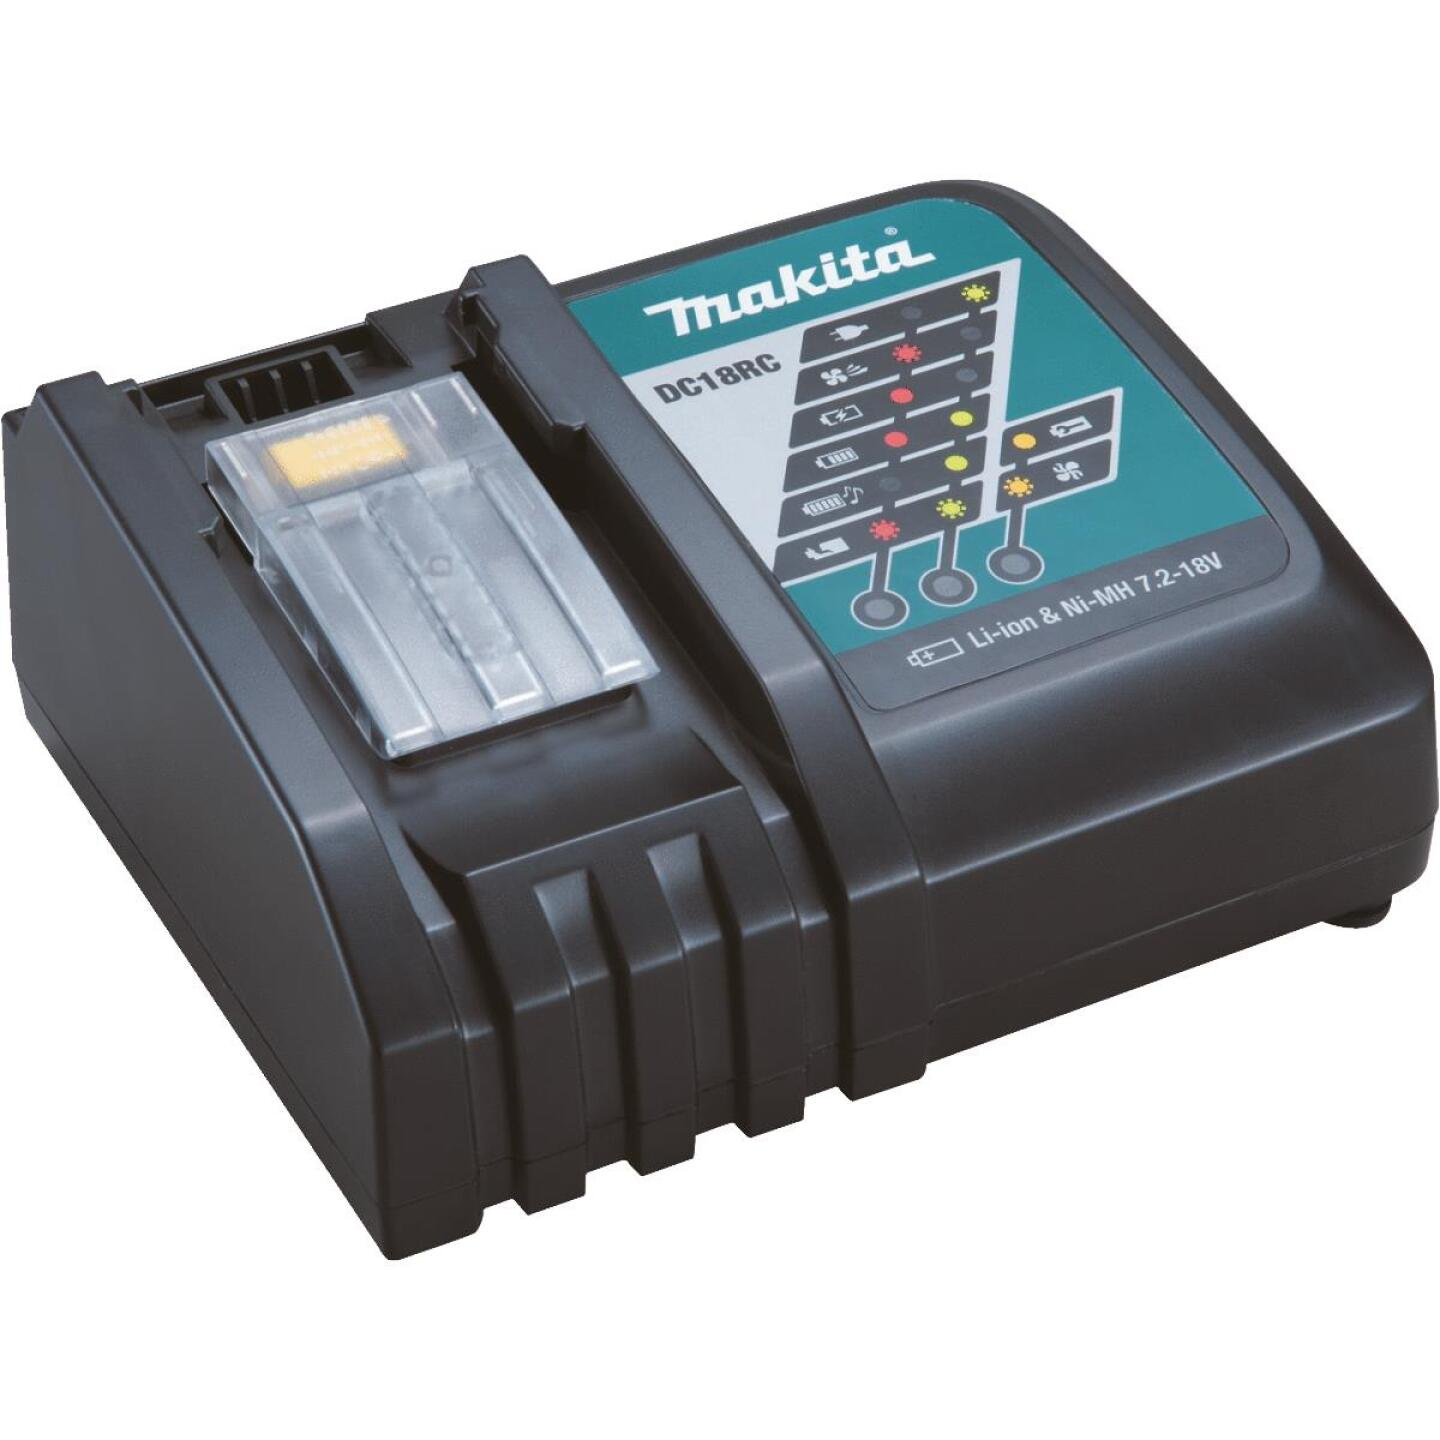 Makita 18 Volt LXT Lithium-Ion Rapid Optimum Battery Charger Image 1